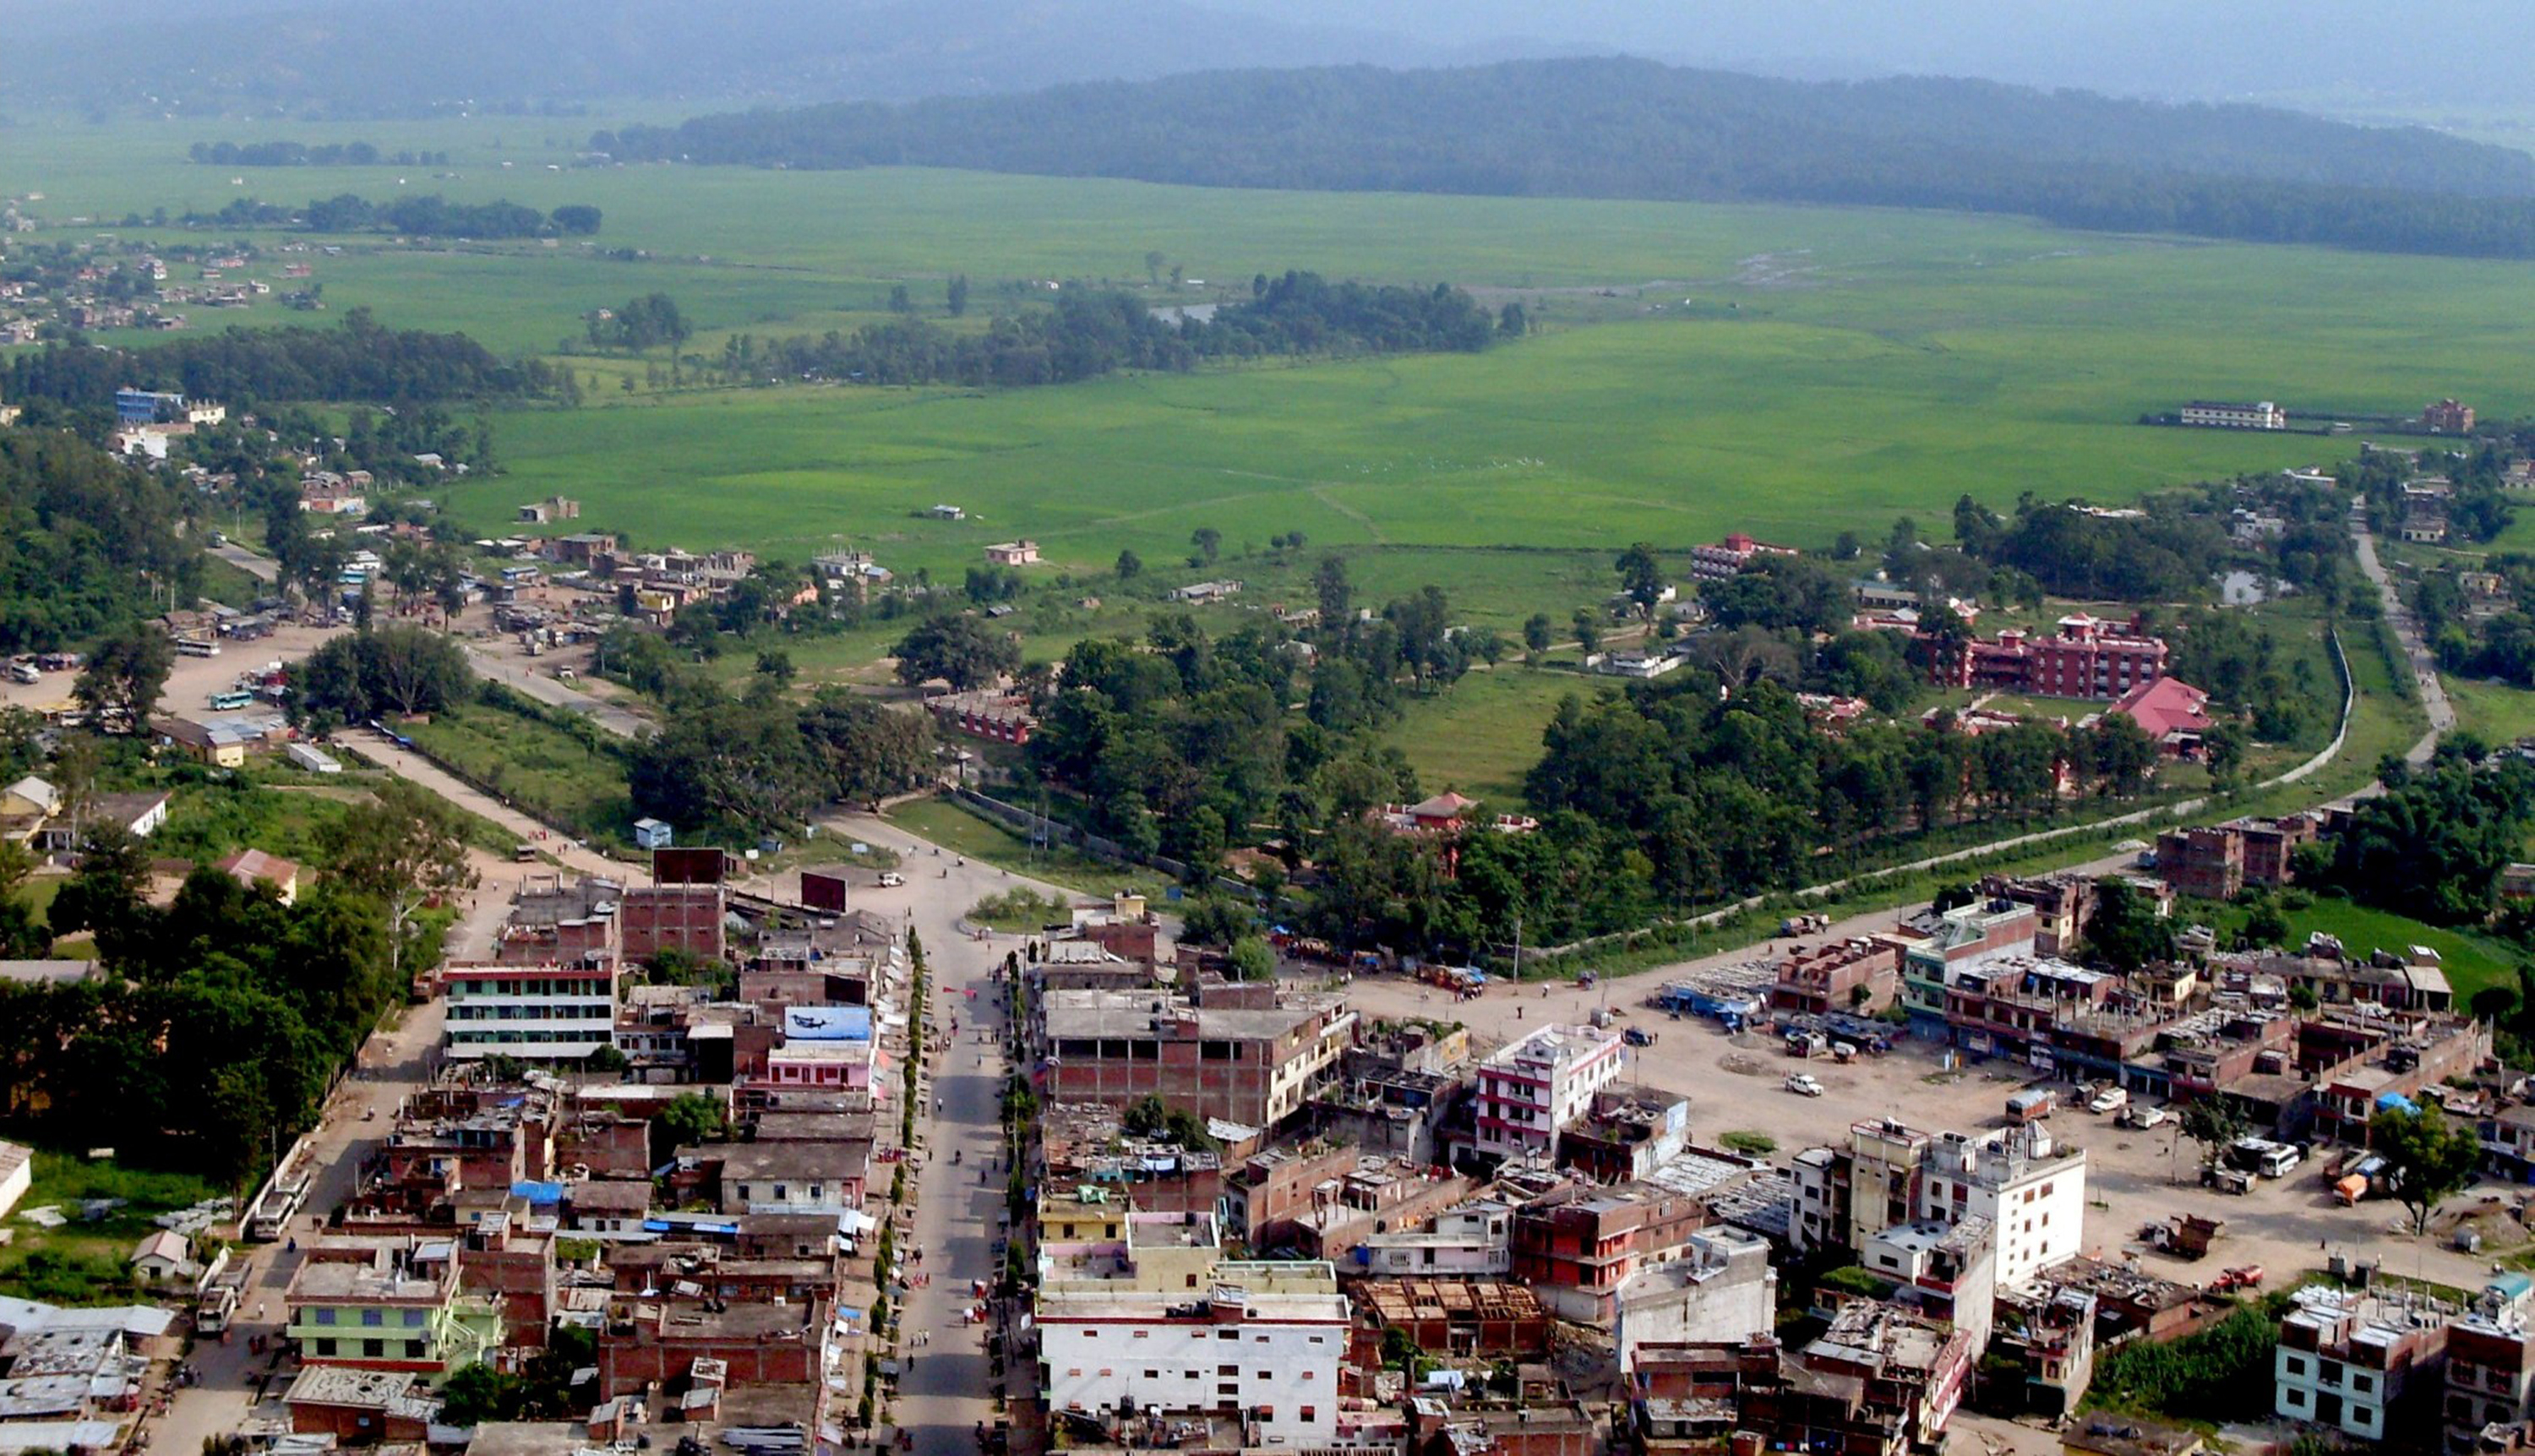 Here are five places you should visit in Surkhet